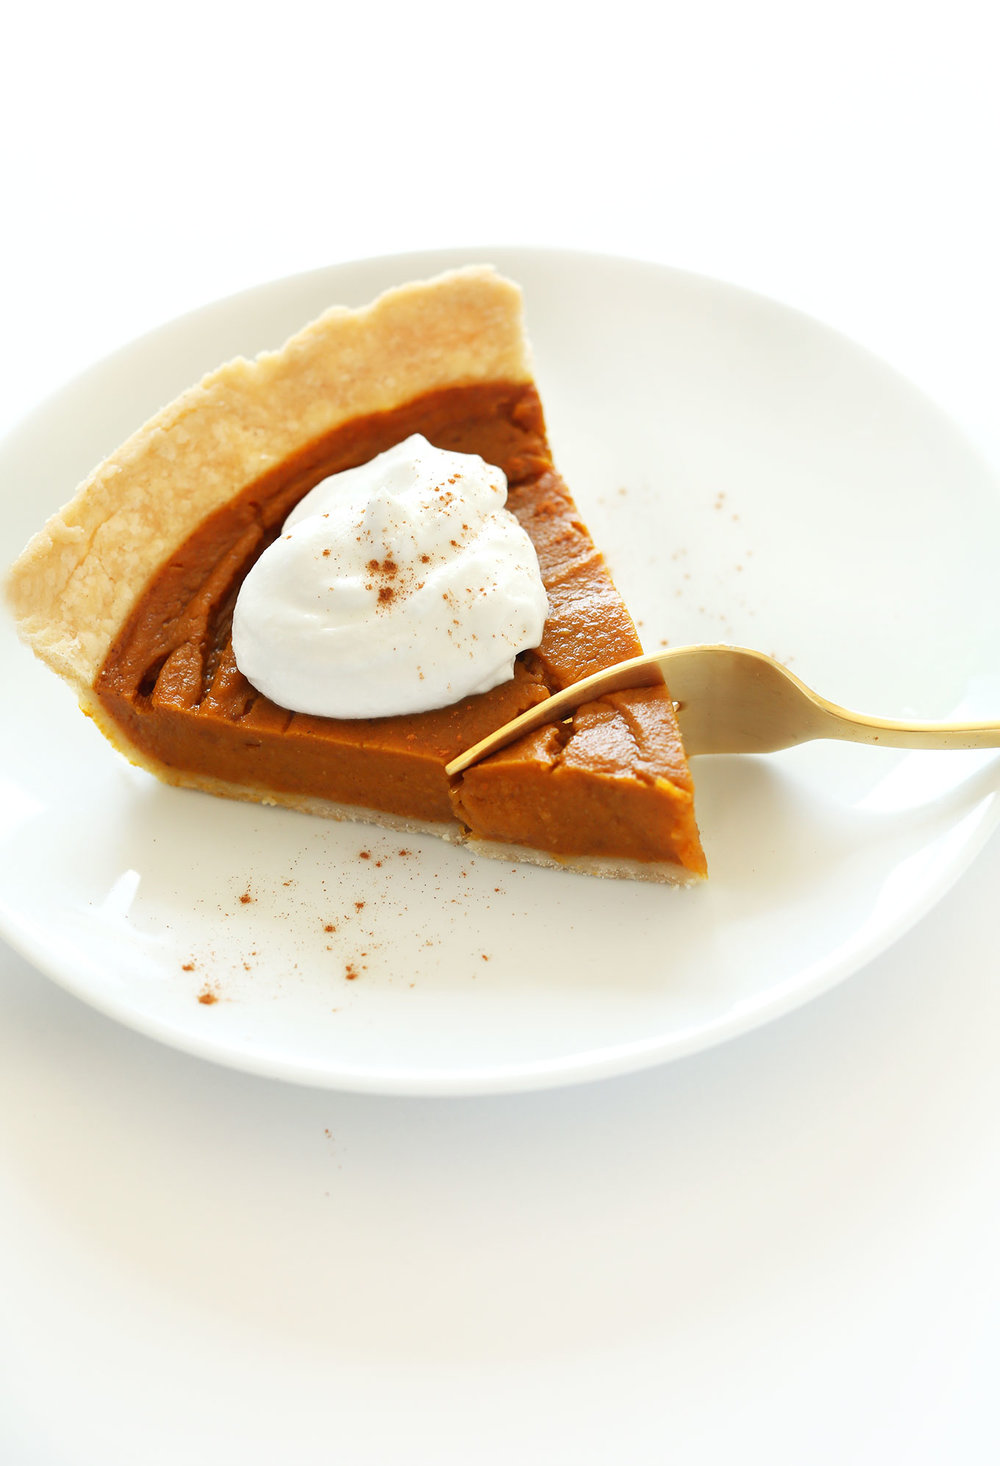 THE-BEST-Vegan-Gluten-Free-Pumpkin-Pie-10-ingredients-fool-proof-methods-SO-delicious-Fool-all-your-guests-this-Thanksgiving.jpg